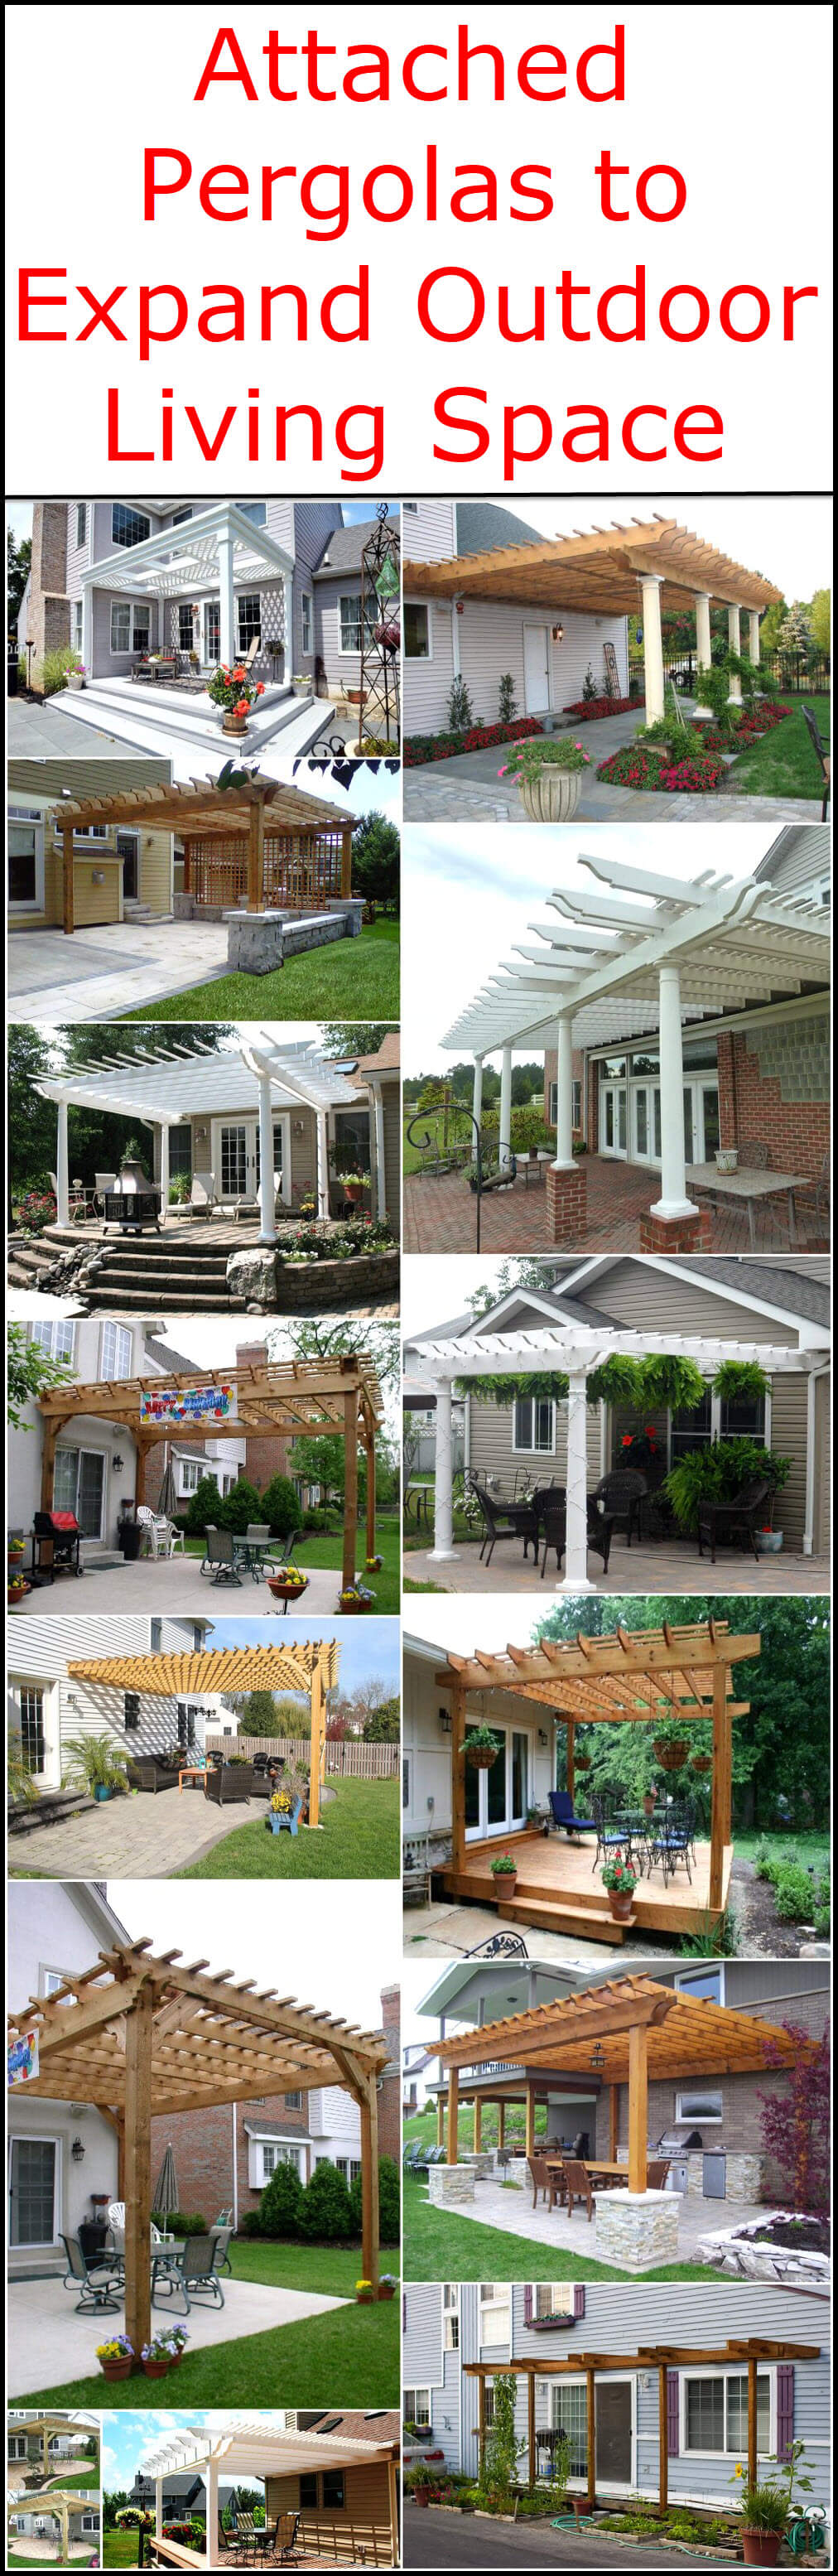 Attached Pergolas to Expand Outdoor Living Space